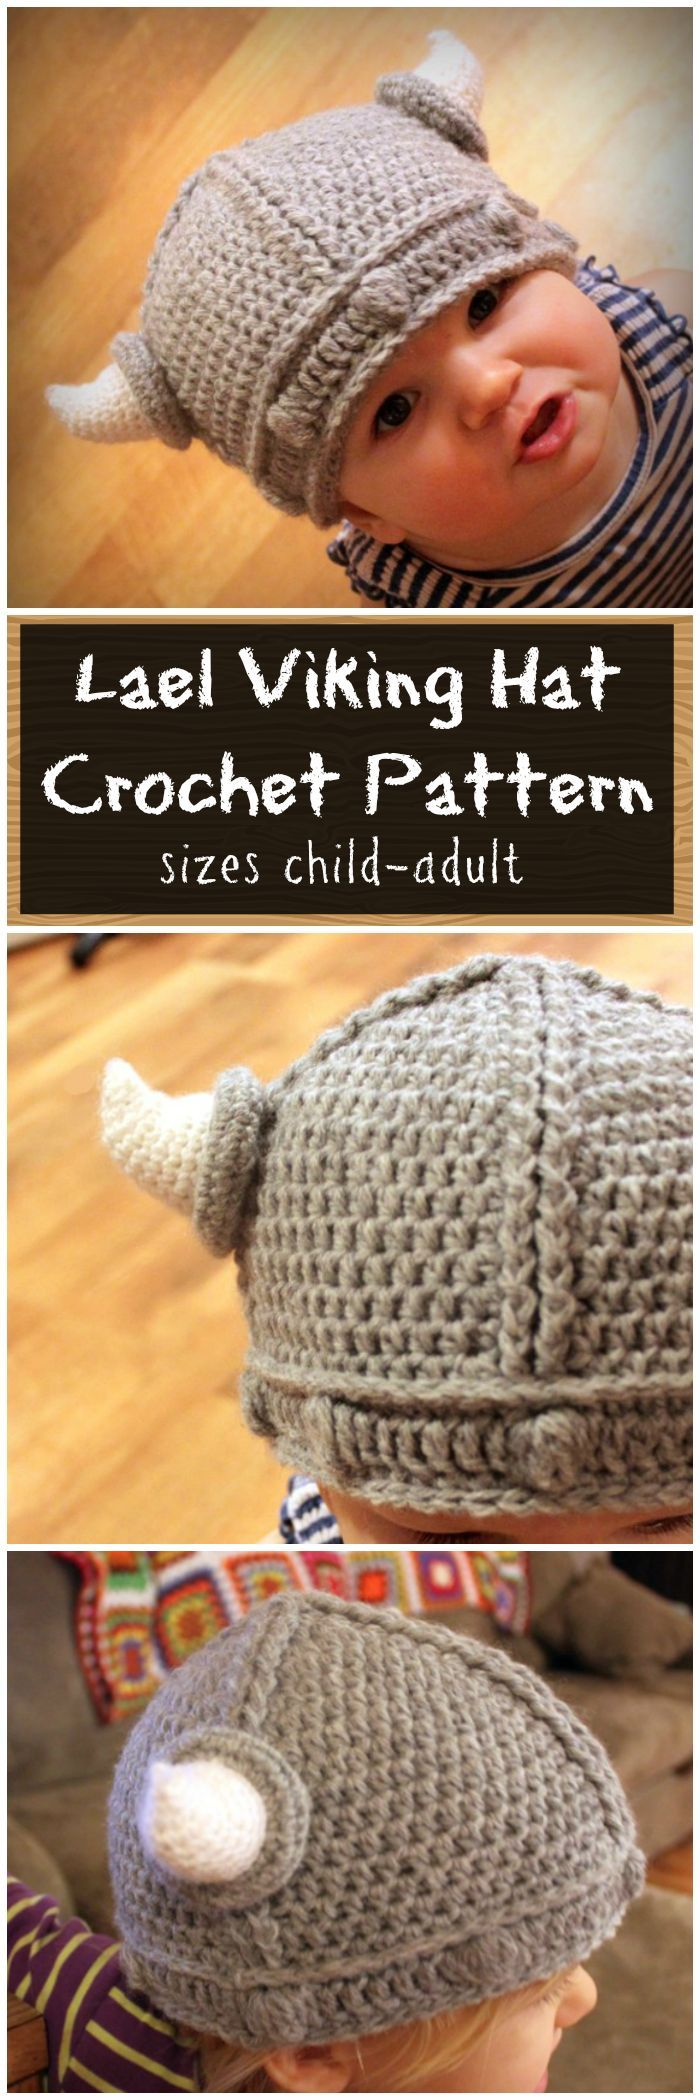 Crocheted Viking Hat Pattern for children to adult. Such a cute hat ...